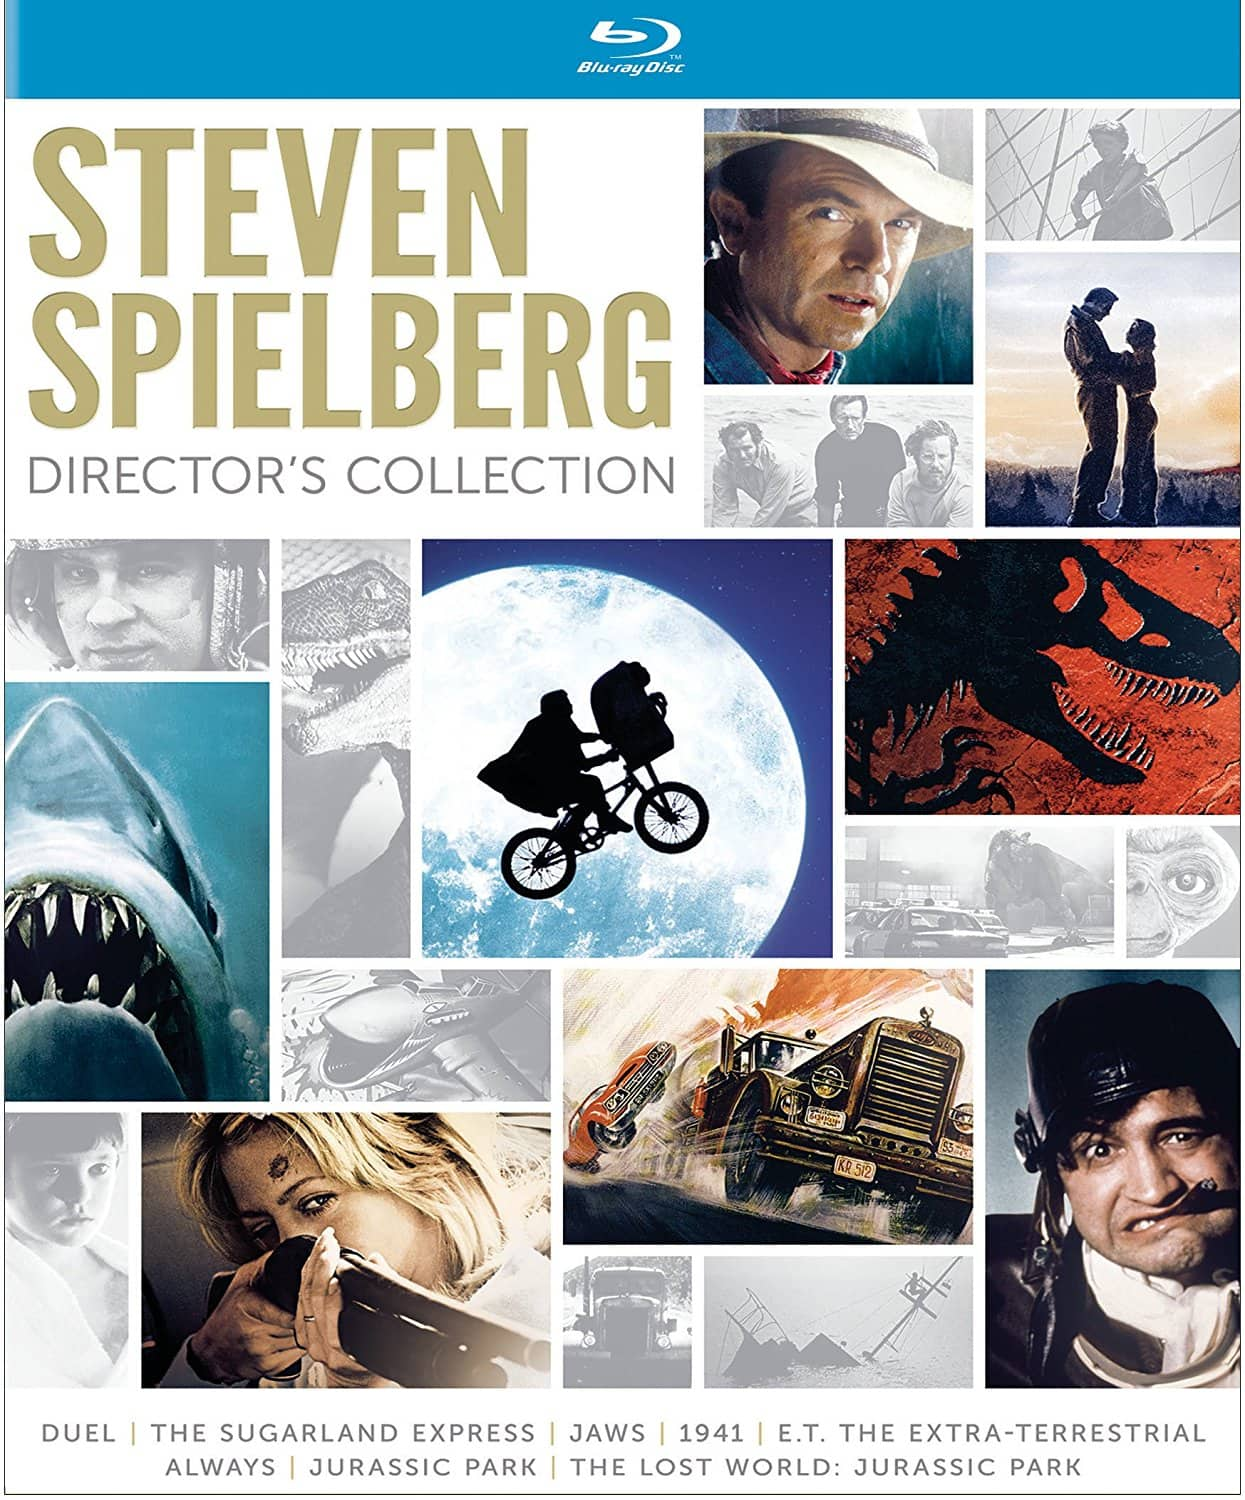 Steven Spielberg Director's Collection Blu-Ray $28 @ amazon